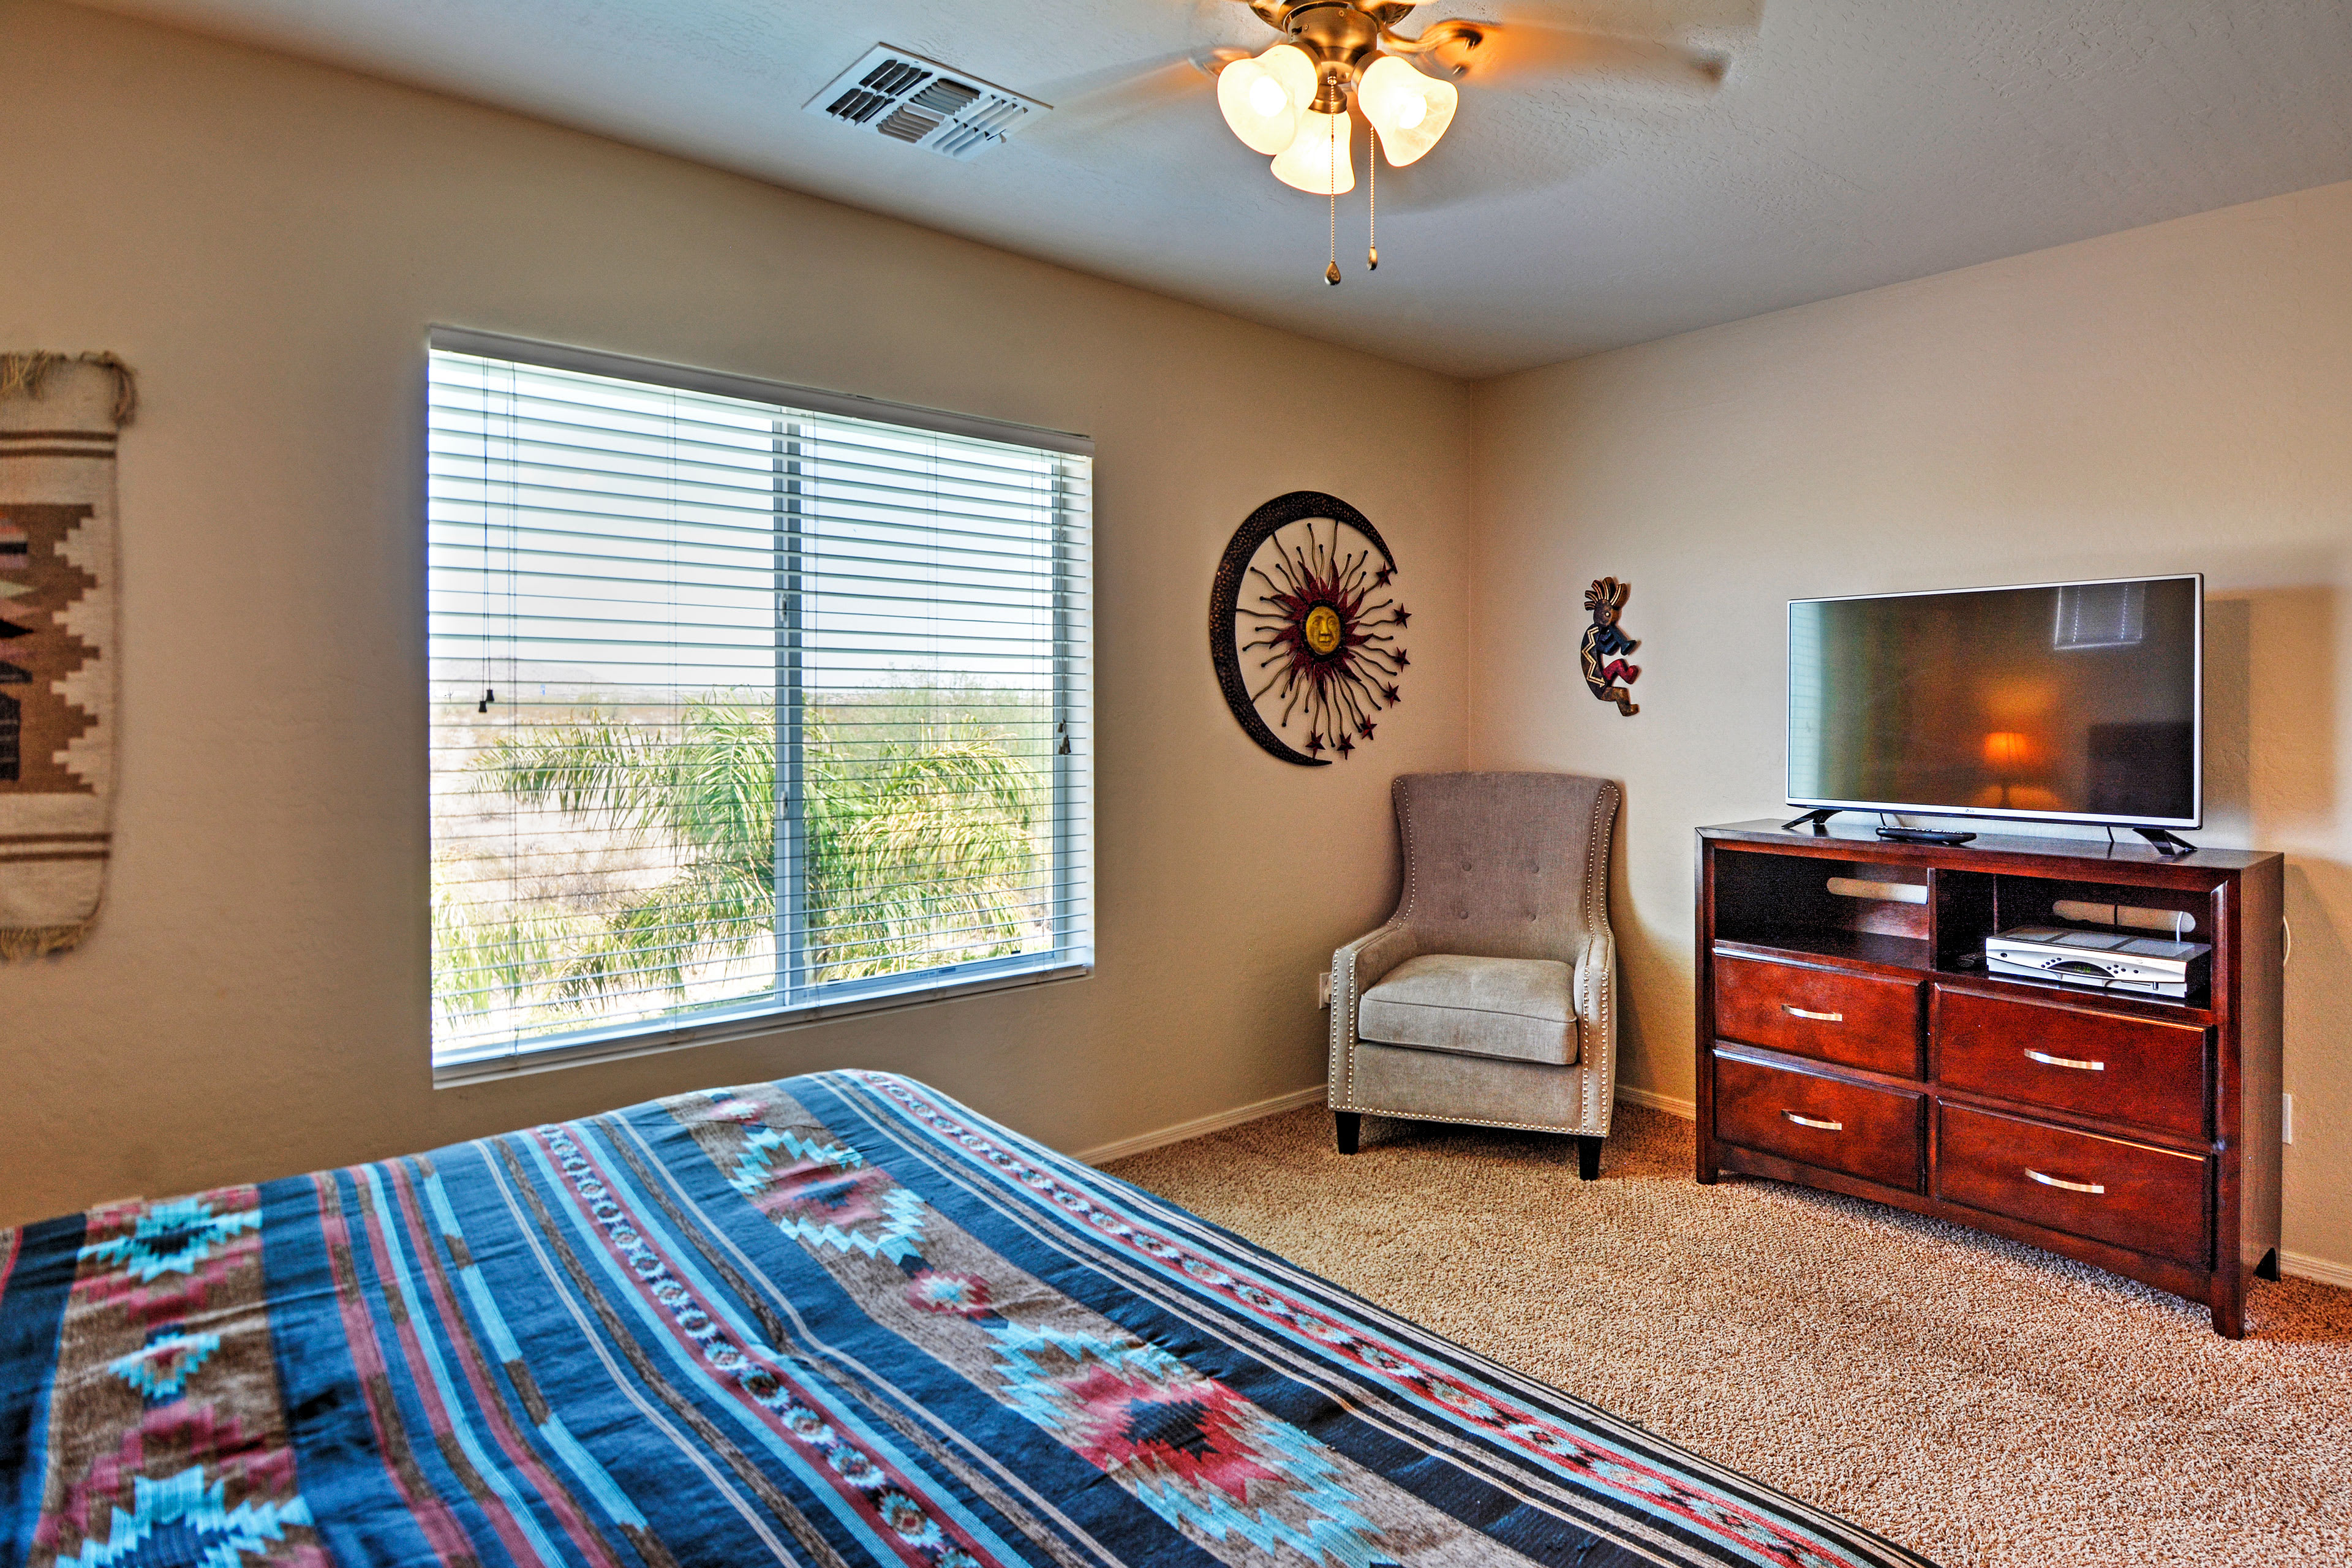 Rest peacefully in this southwestern bedroom.